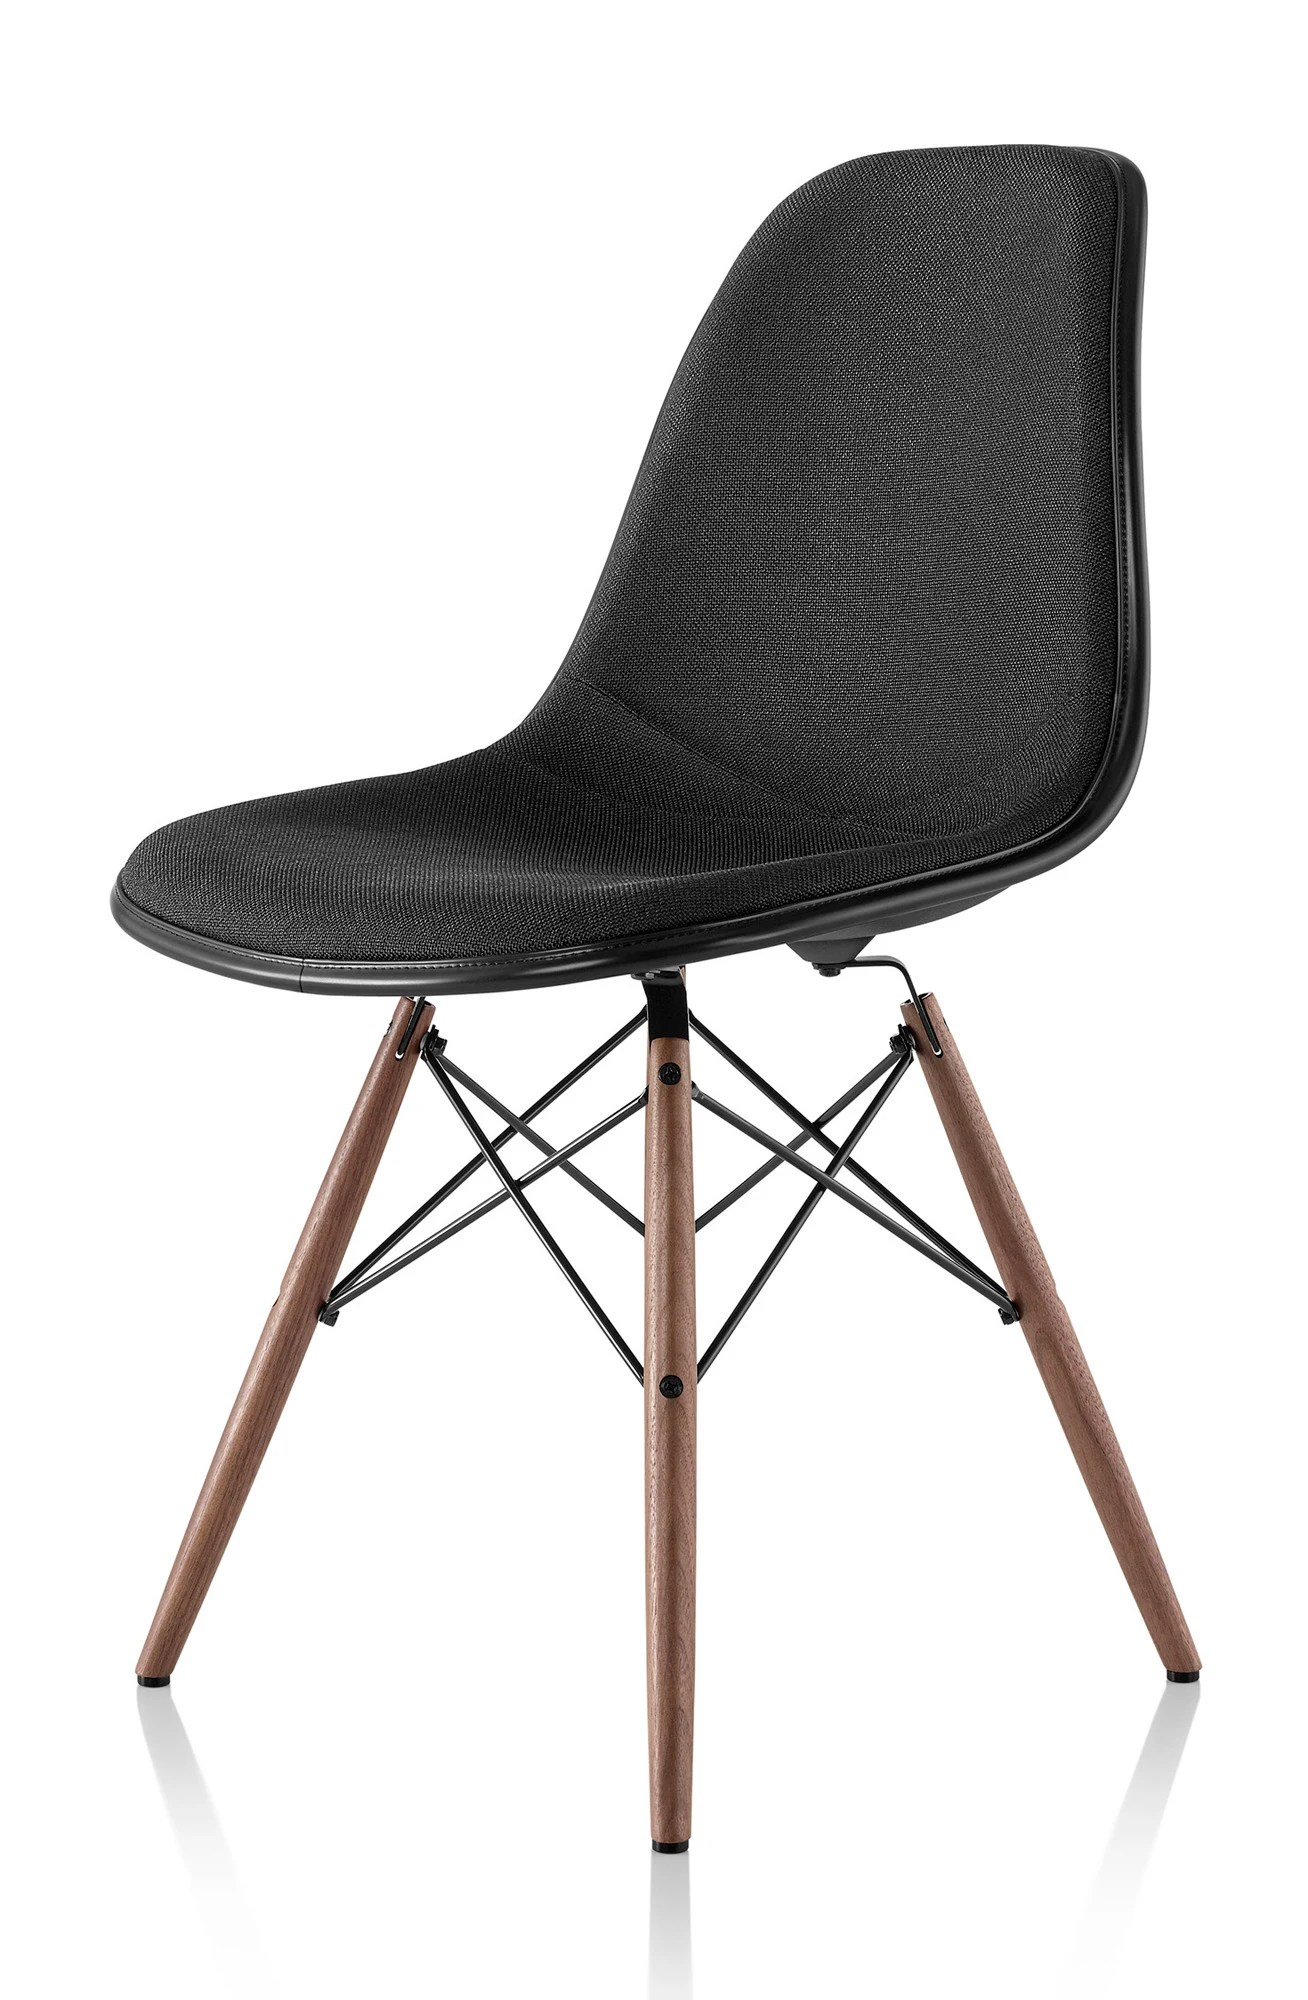 eames molded side chair lift chairs covered by medicaid herman miller plastic upholstered